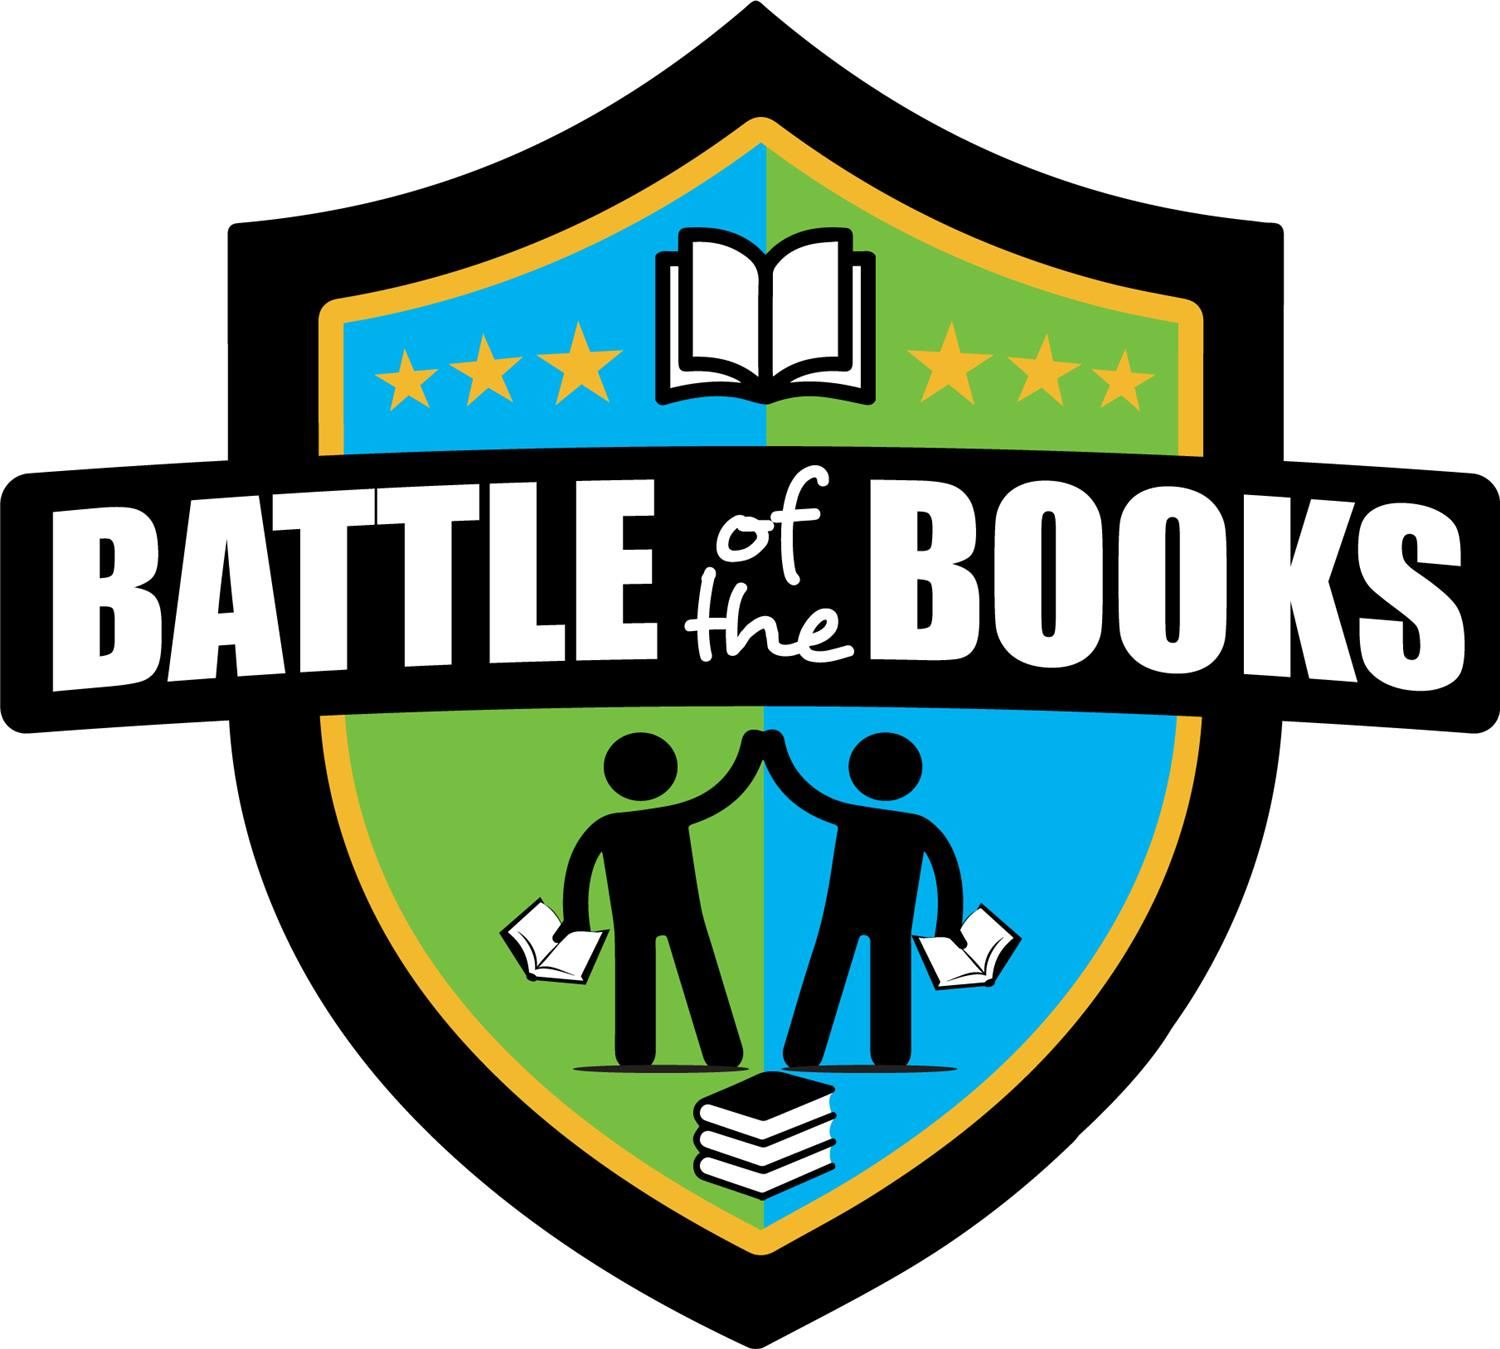 Battle of the books shield